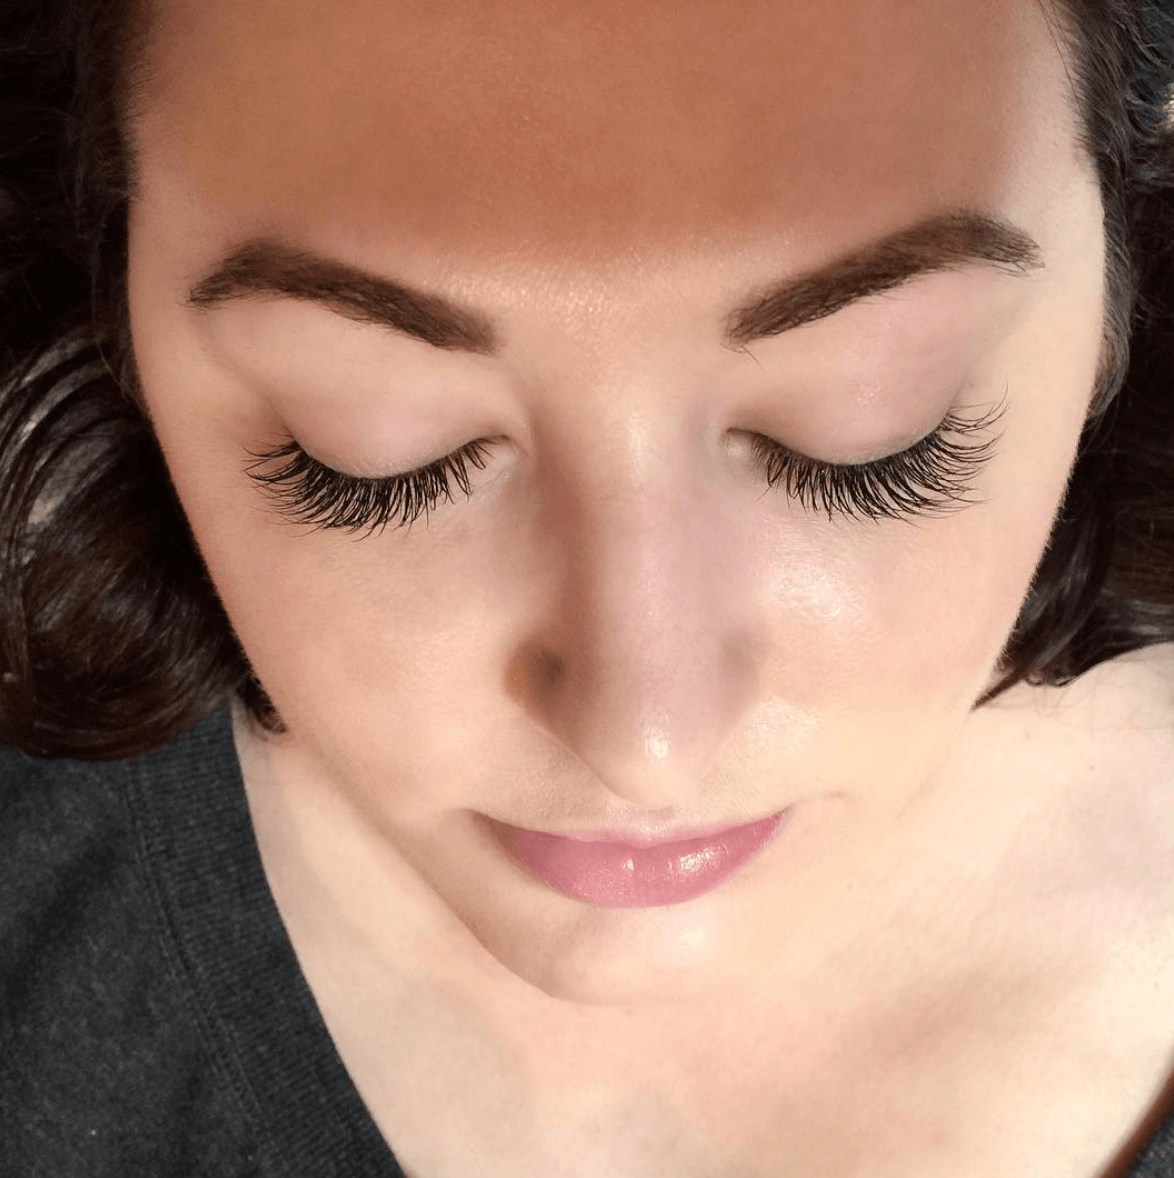 How to care for eyelash extensions - Caring for Eyelash Extensions by popular LA cruelty free beauty blogger My Beauty Bunny